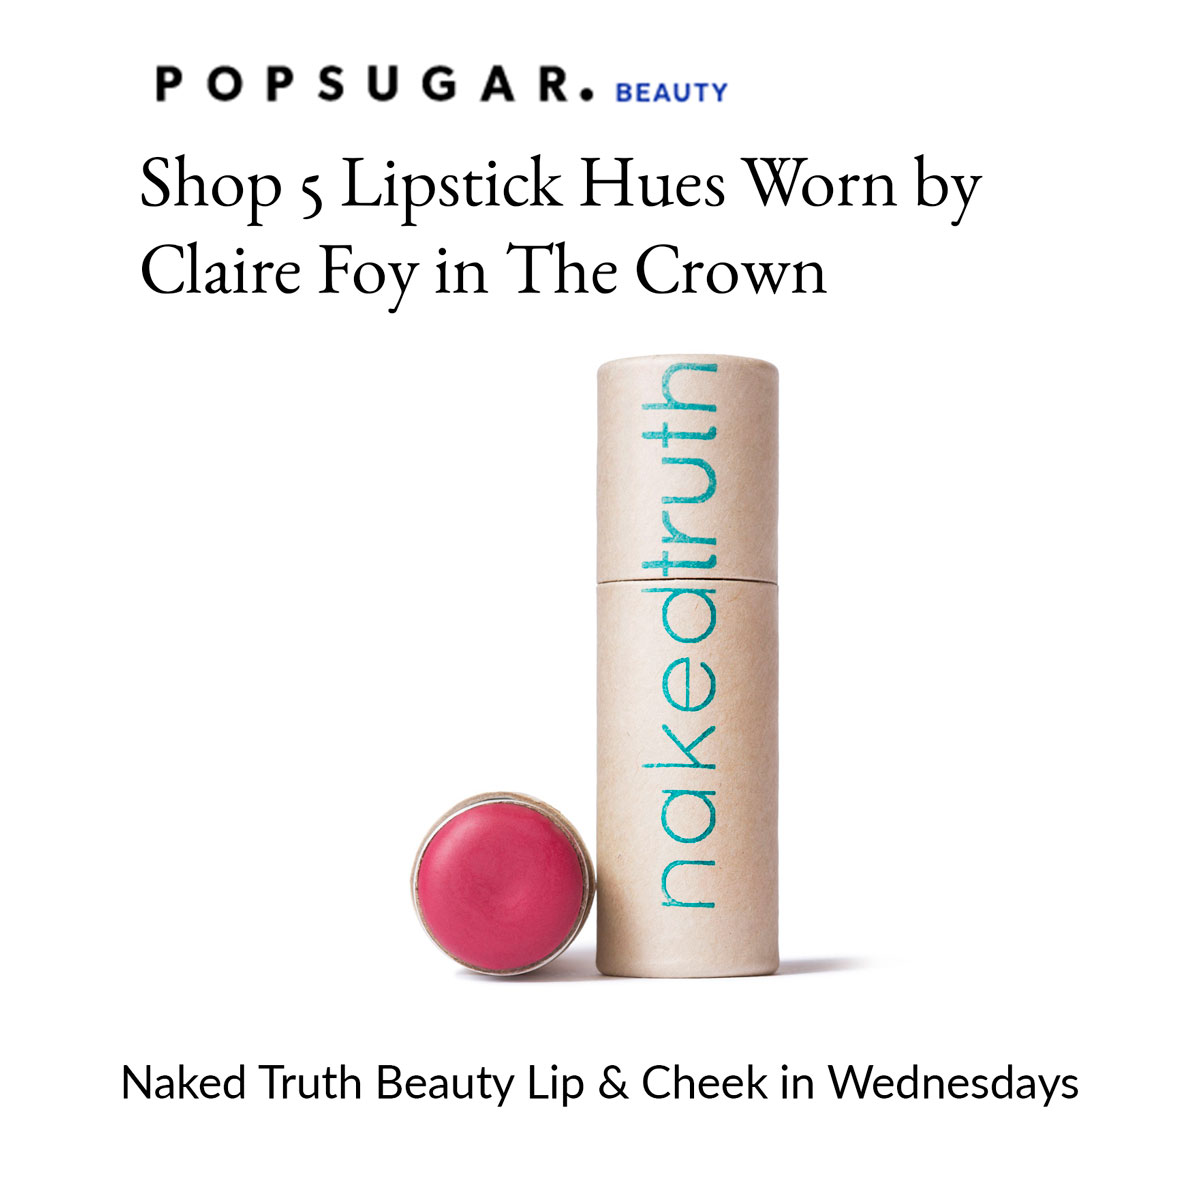 POPSUGAR Shop 5 Lipstick Hues Worn by Claire Foy in The Crown